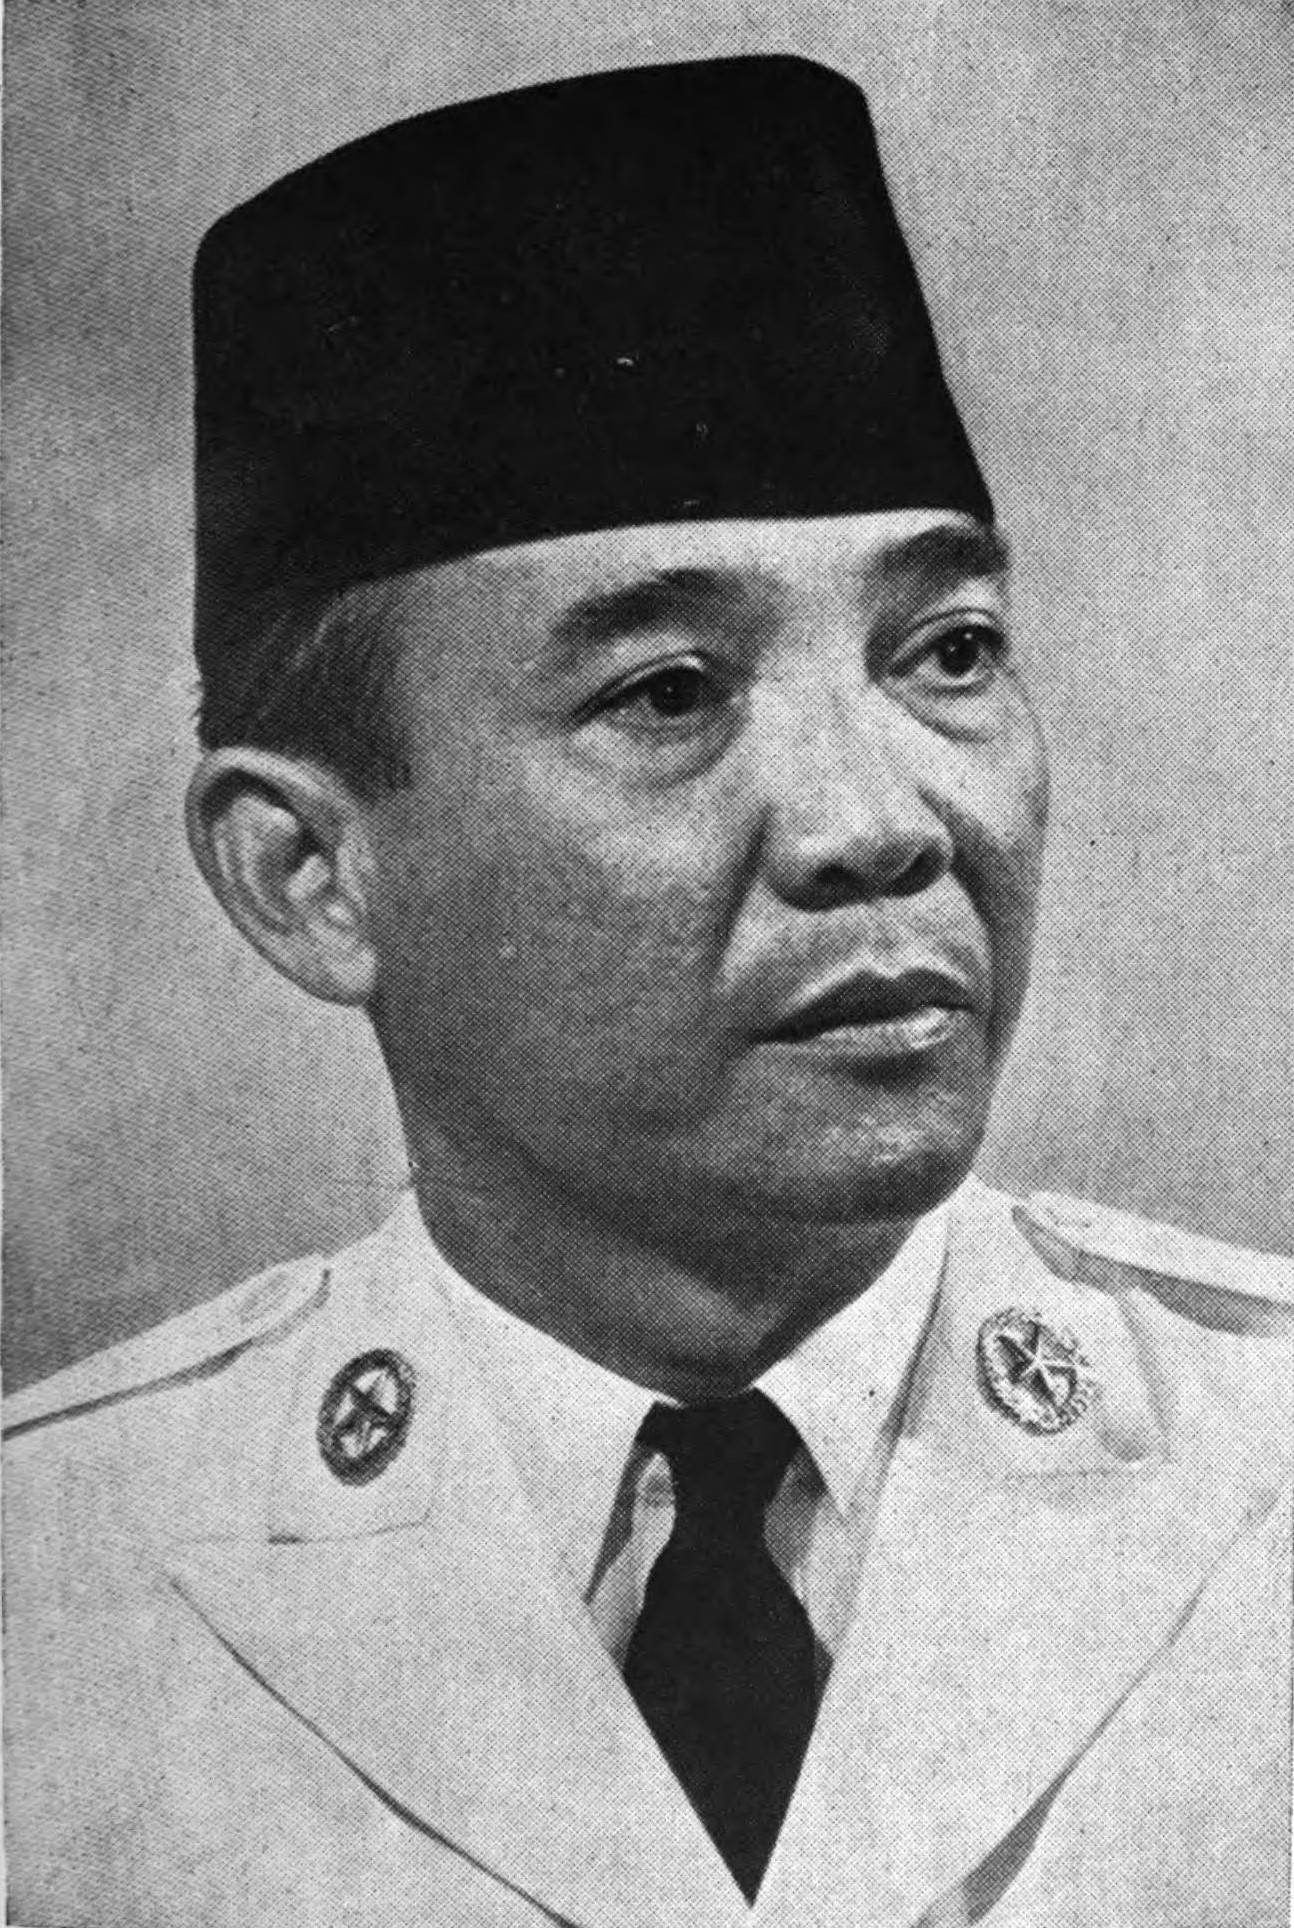 Sukarno, President of Indonesia (1945-1967) in undated photo